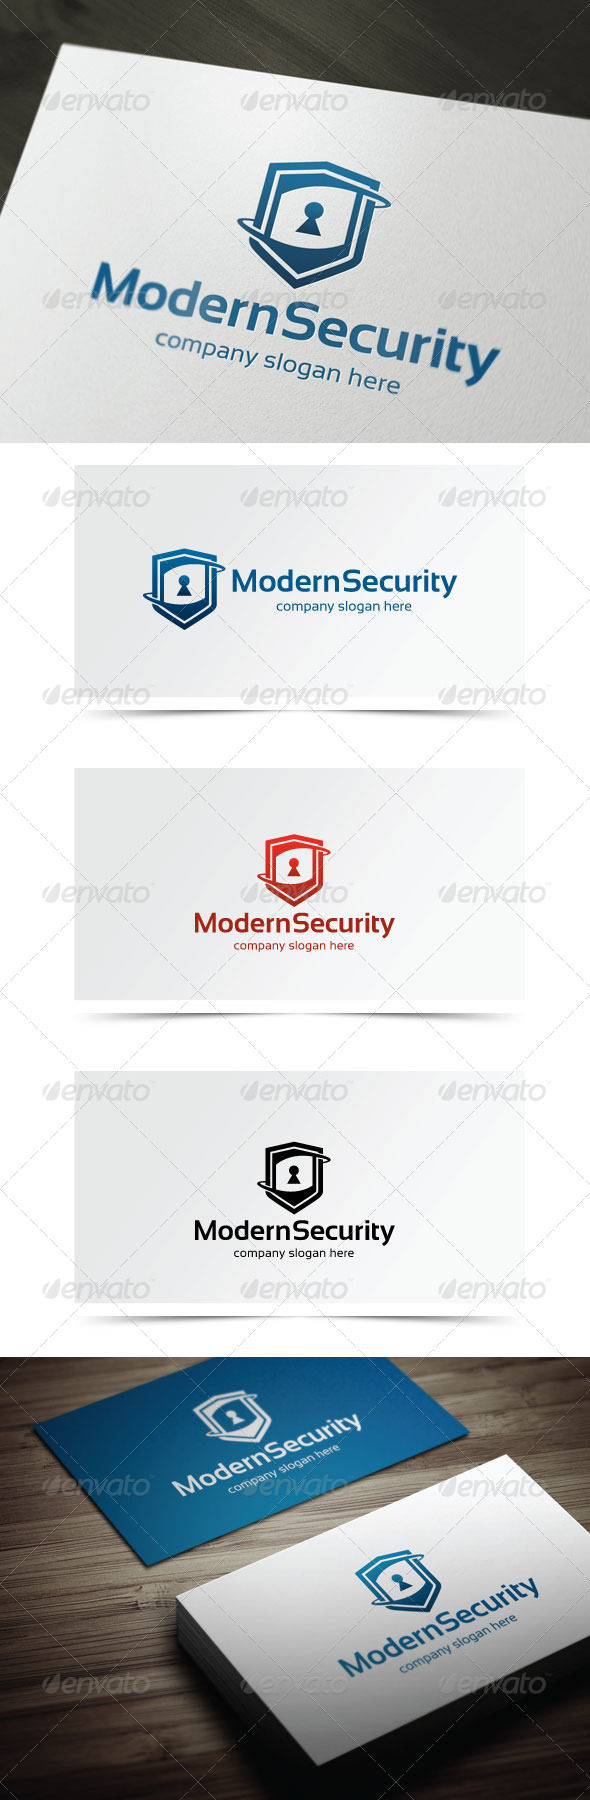 Modern Security